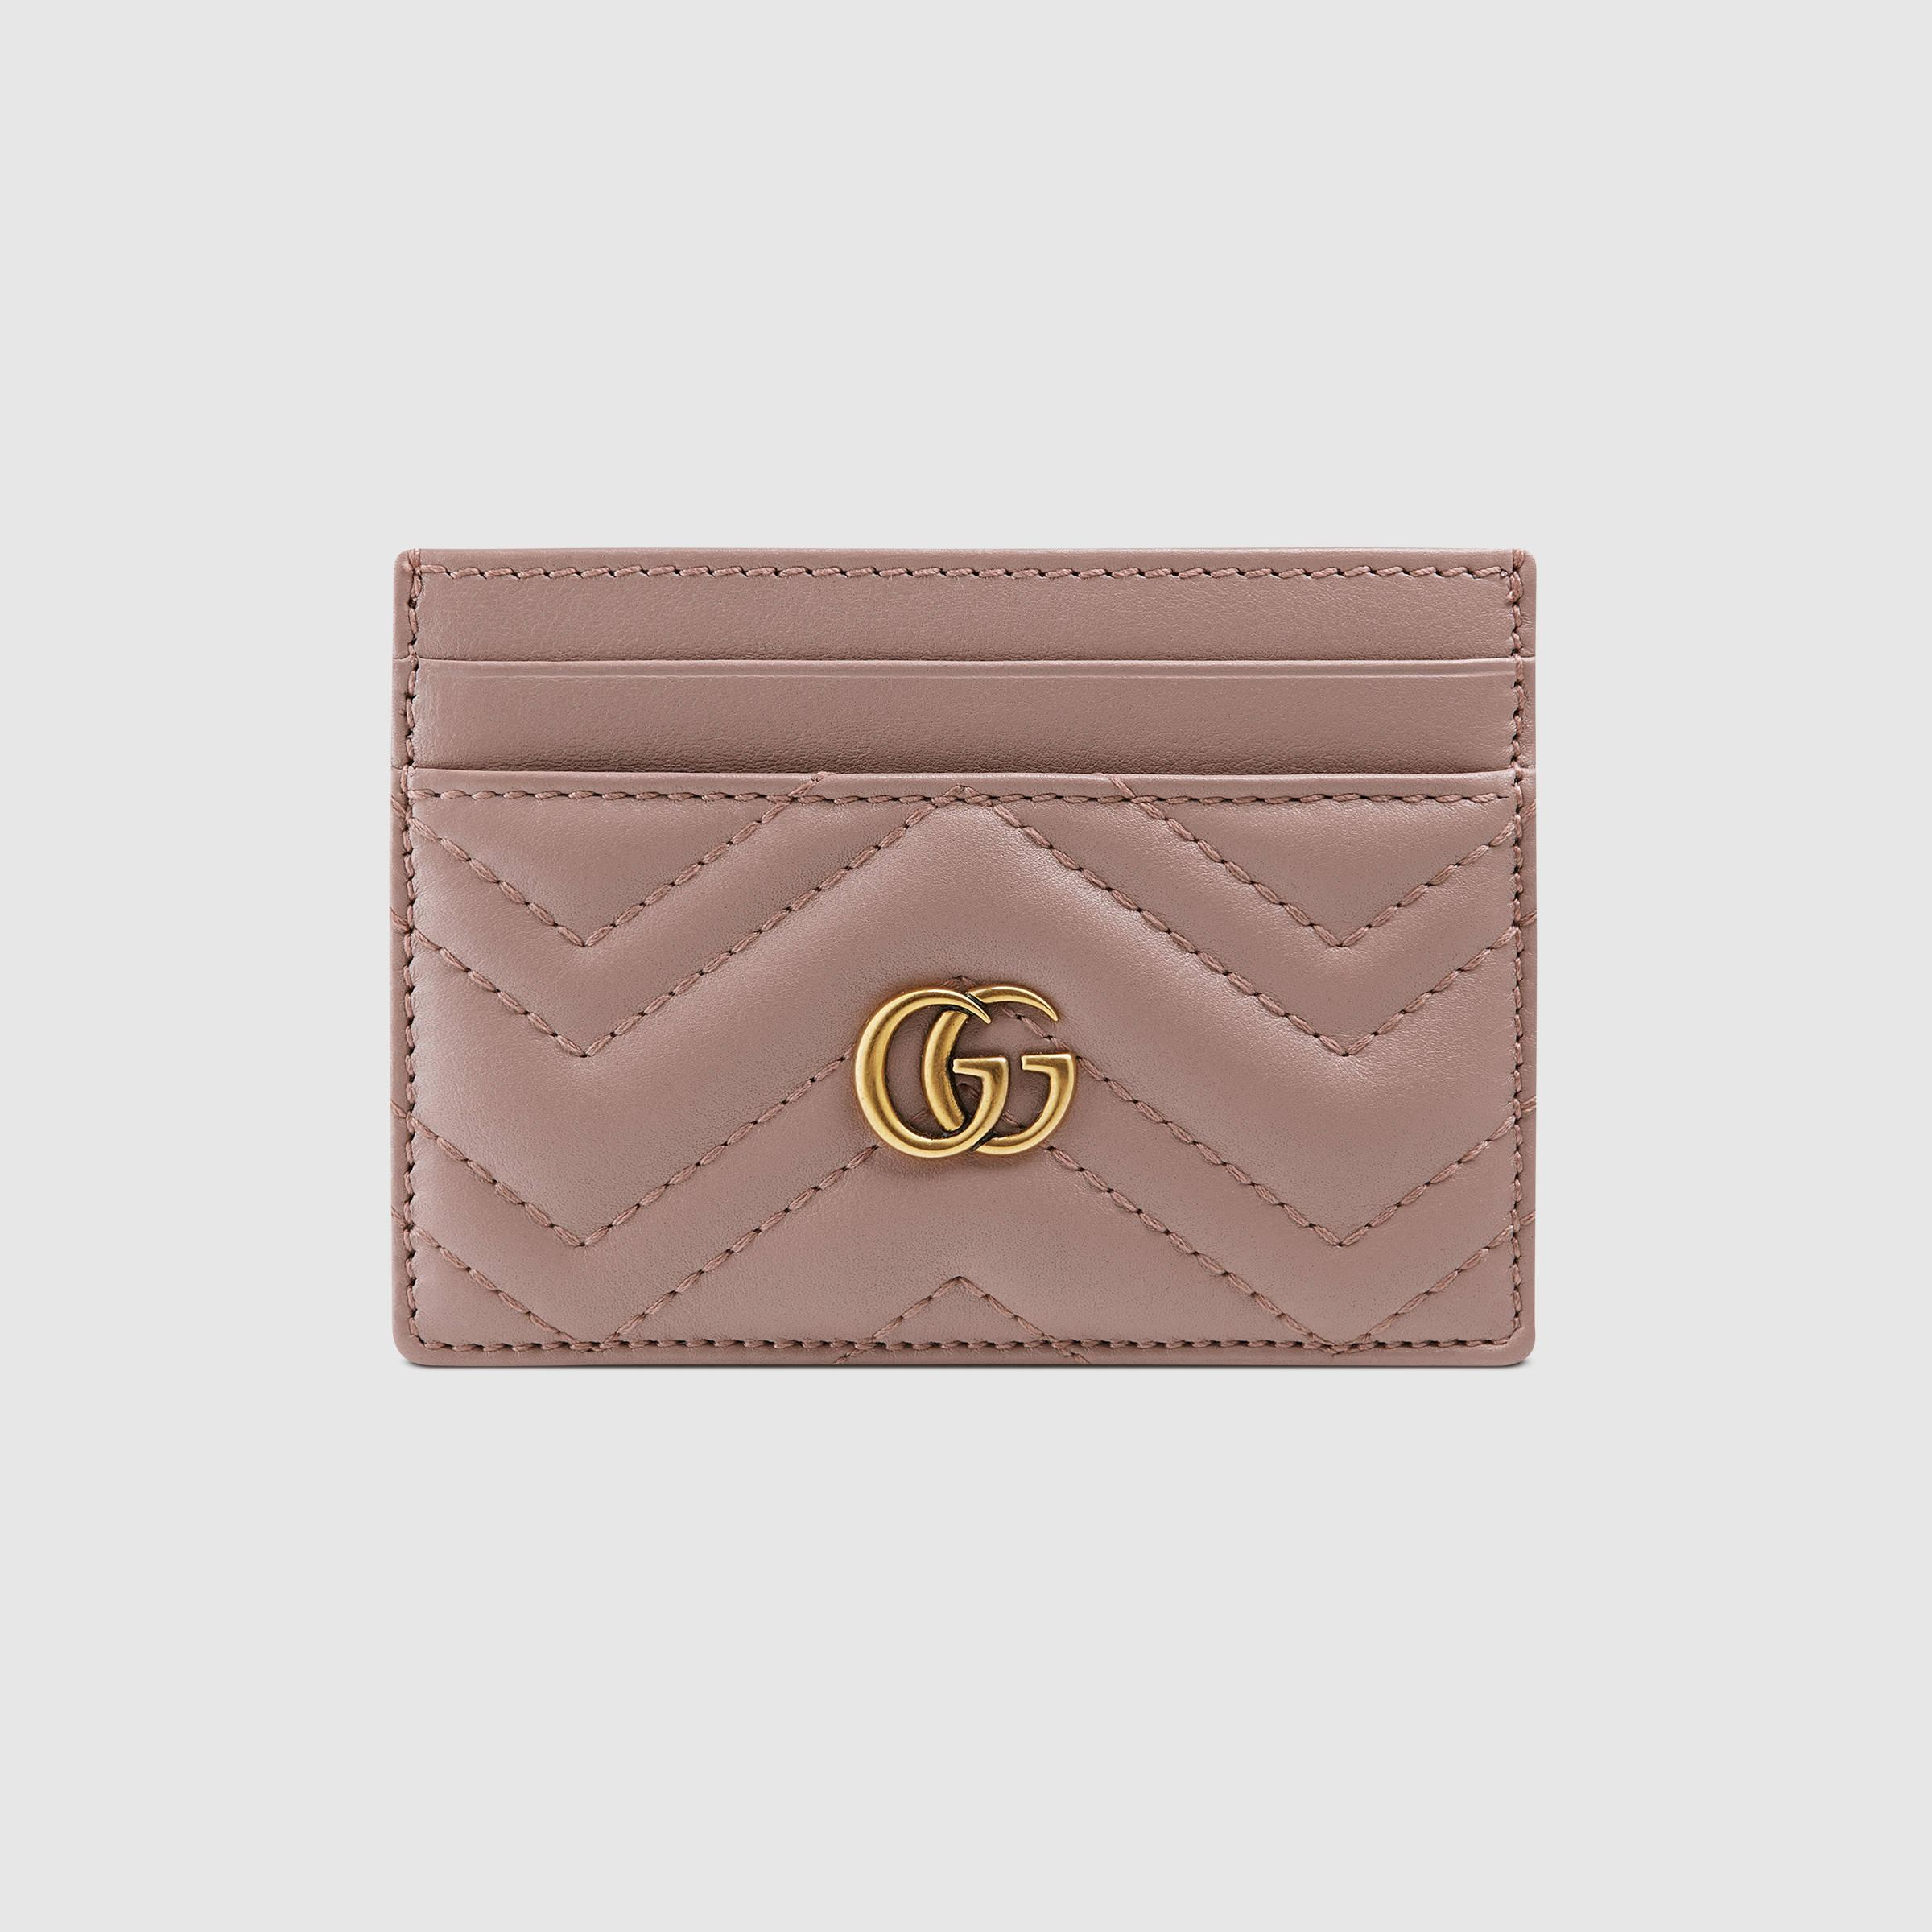 Gucci card holder zoom in gucci card holder f lenaleestore gucci card holder gallery gucci card holder magicingreecefo Images